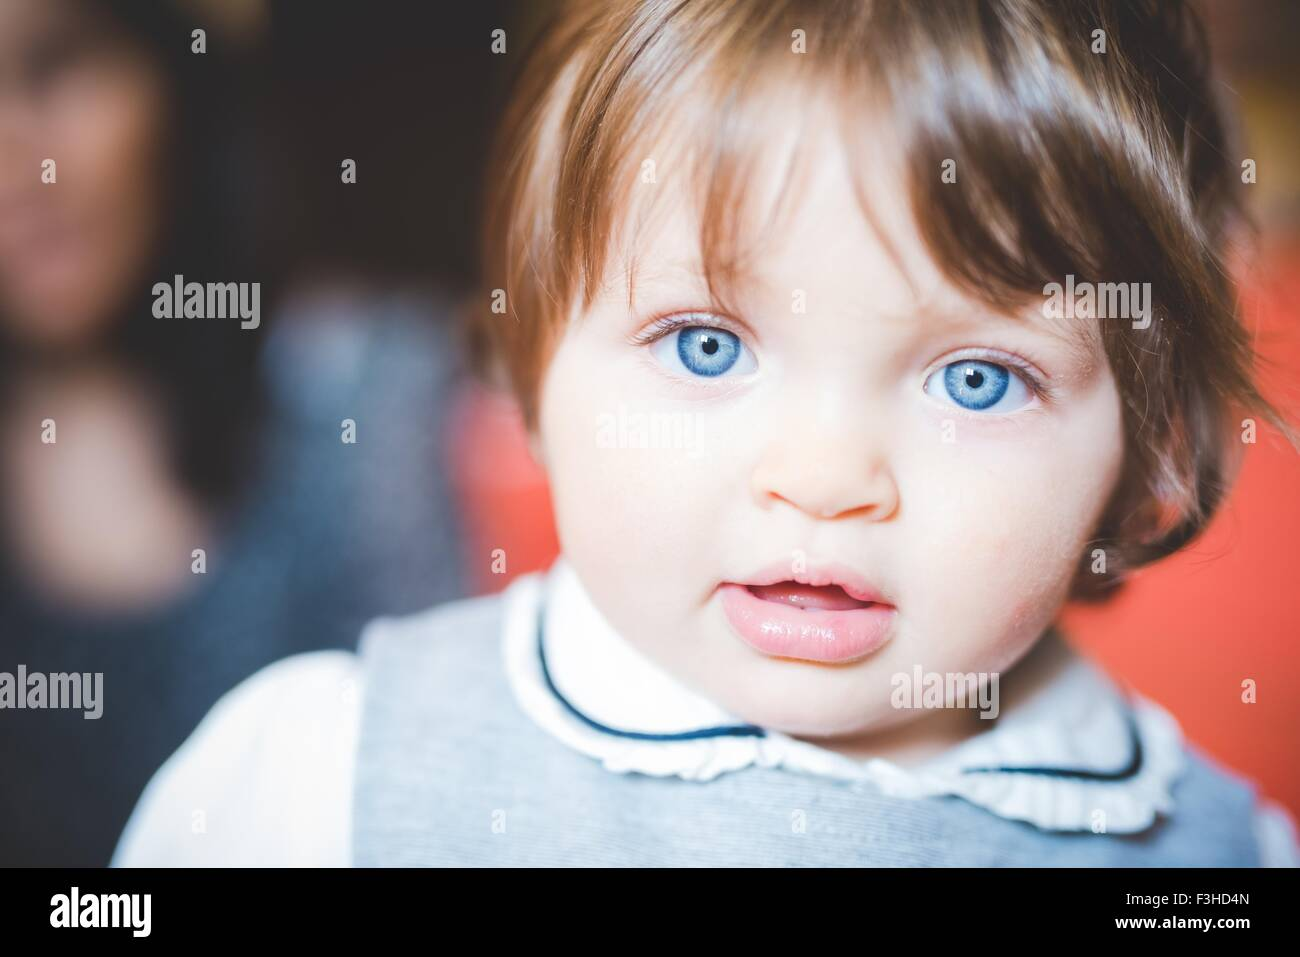 Close up portrait of young woman with blue eyes Photo Stock